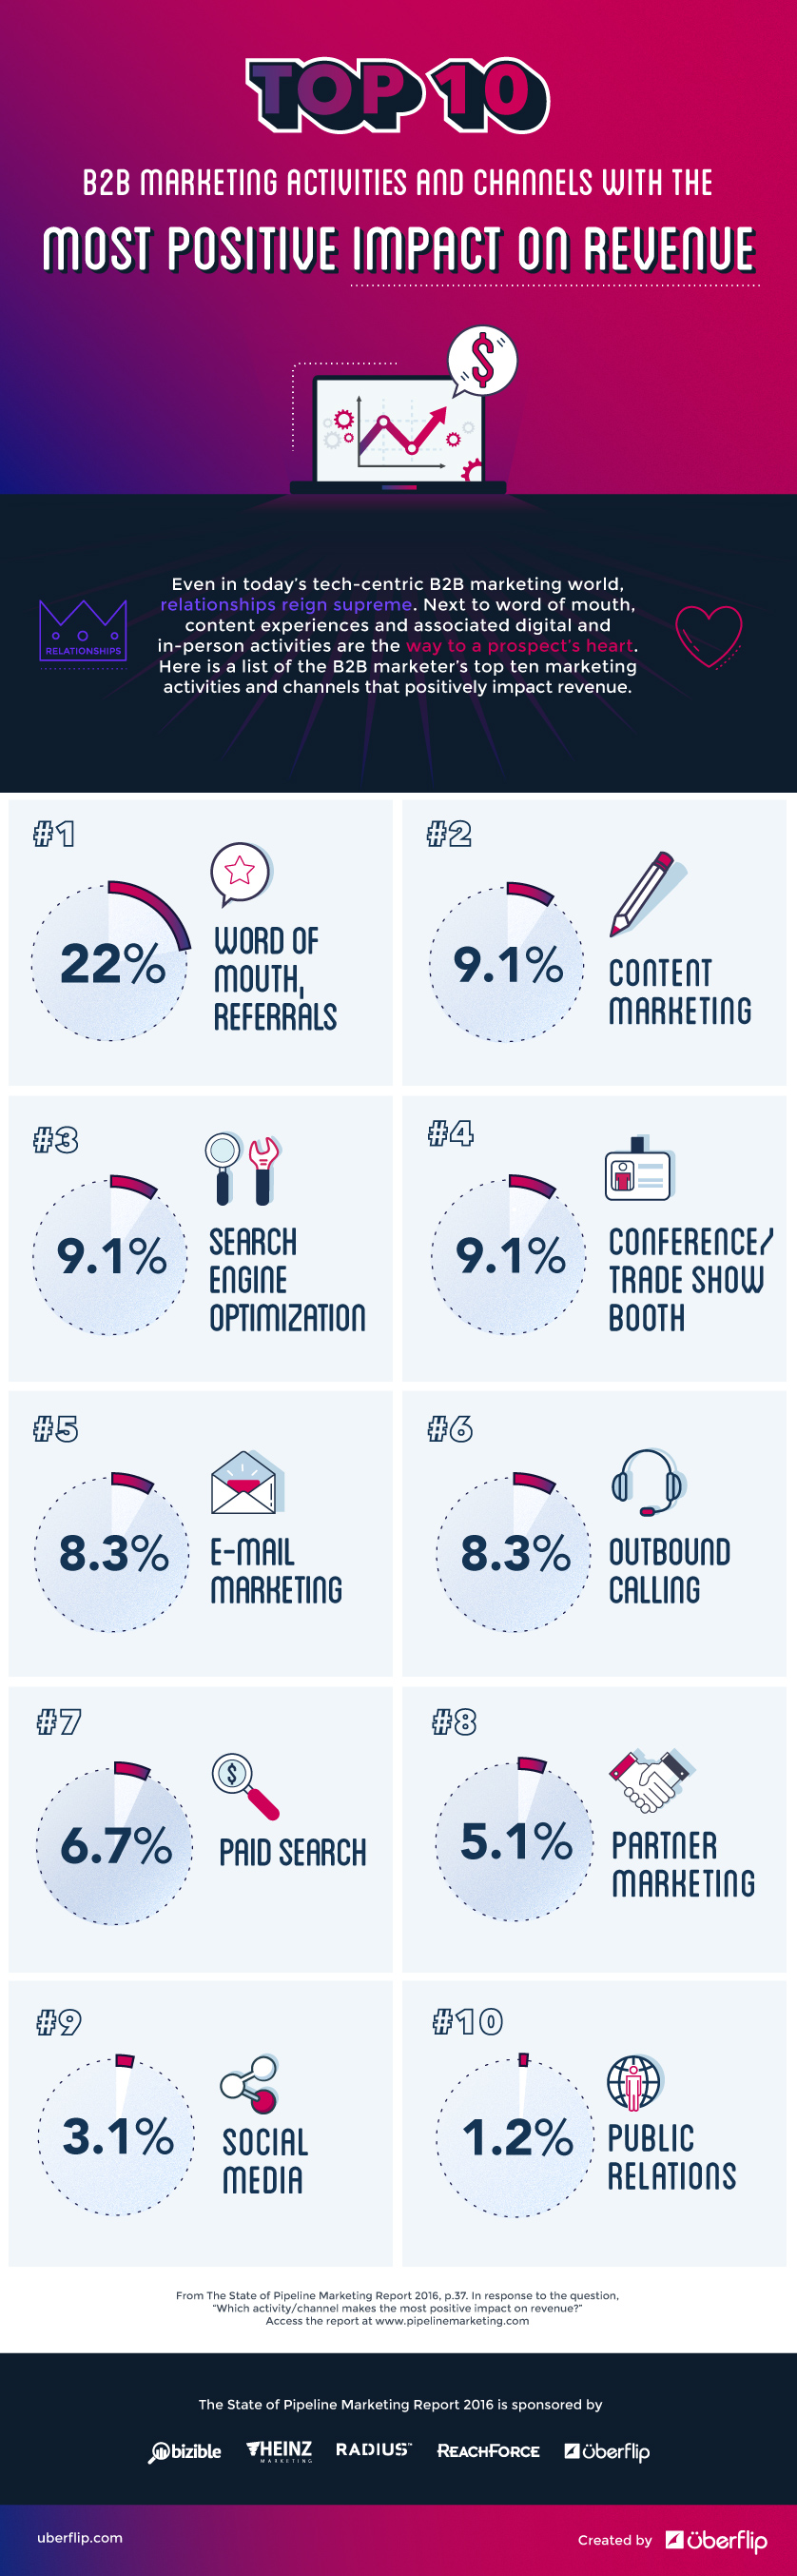 The Top 10 Revenue Impacting Marketing Activities Infographic | Uberflip